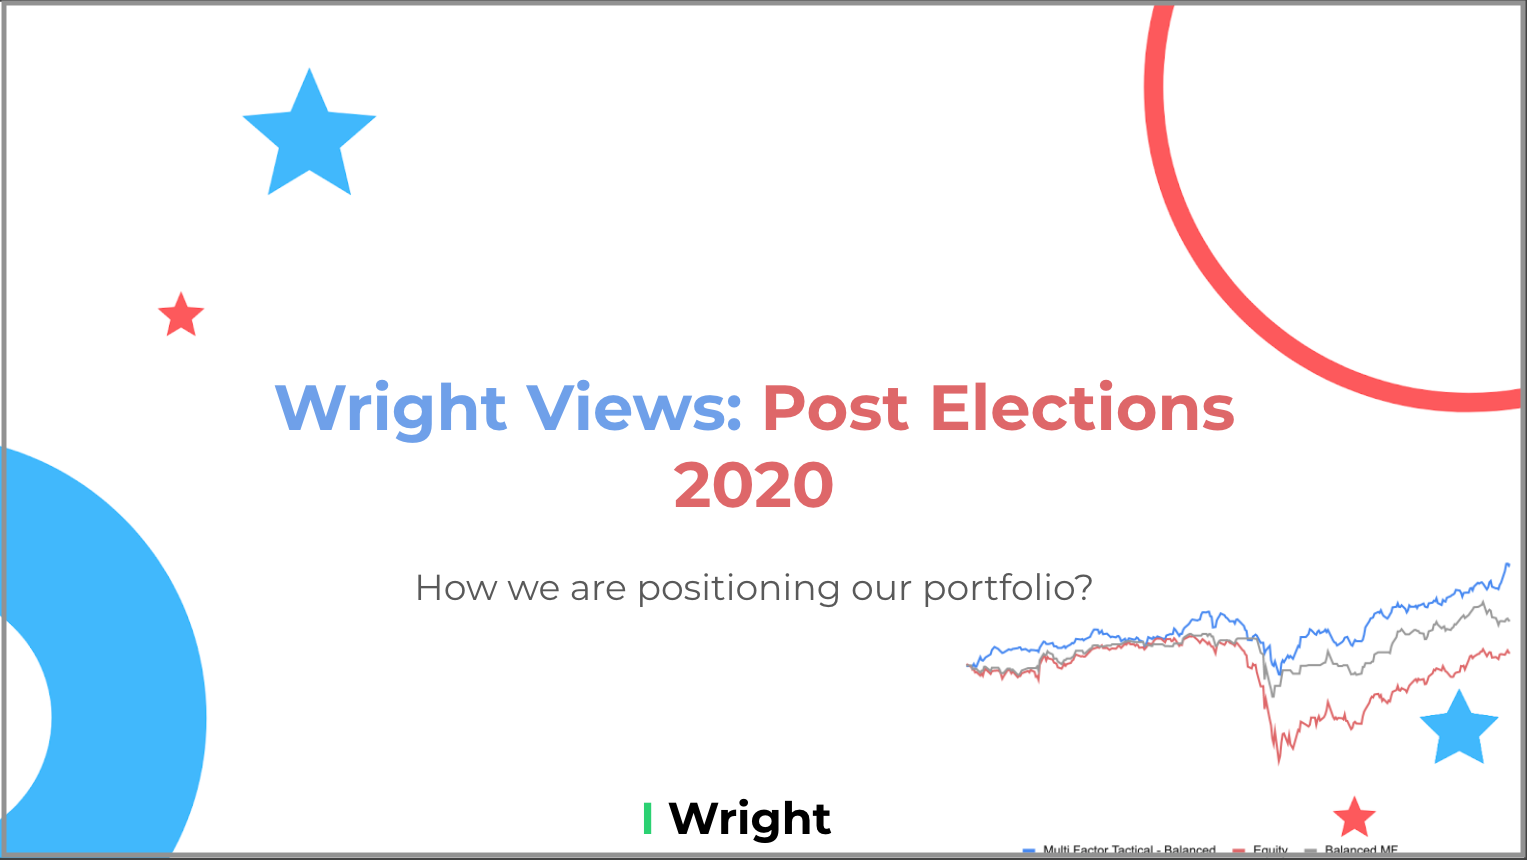 Wright Views: Post Elections 2020